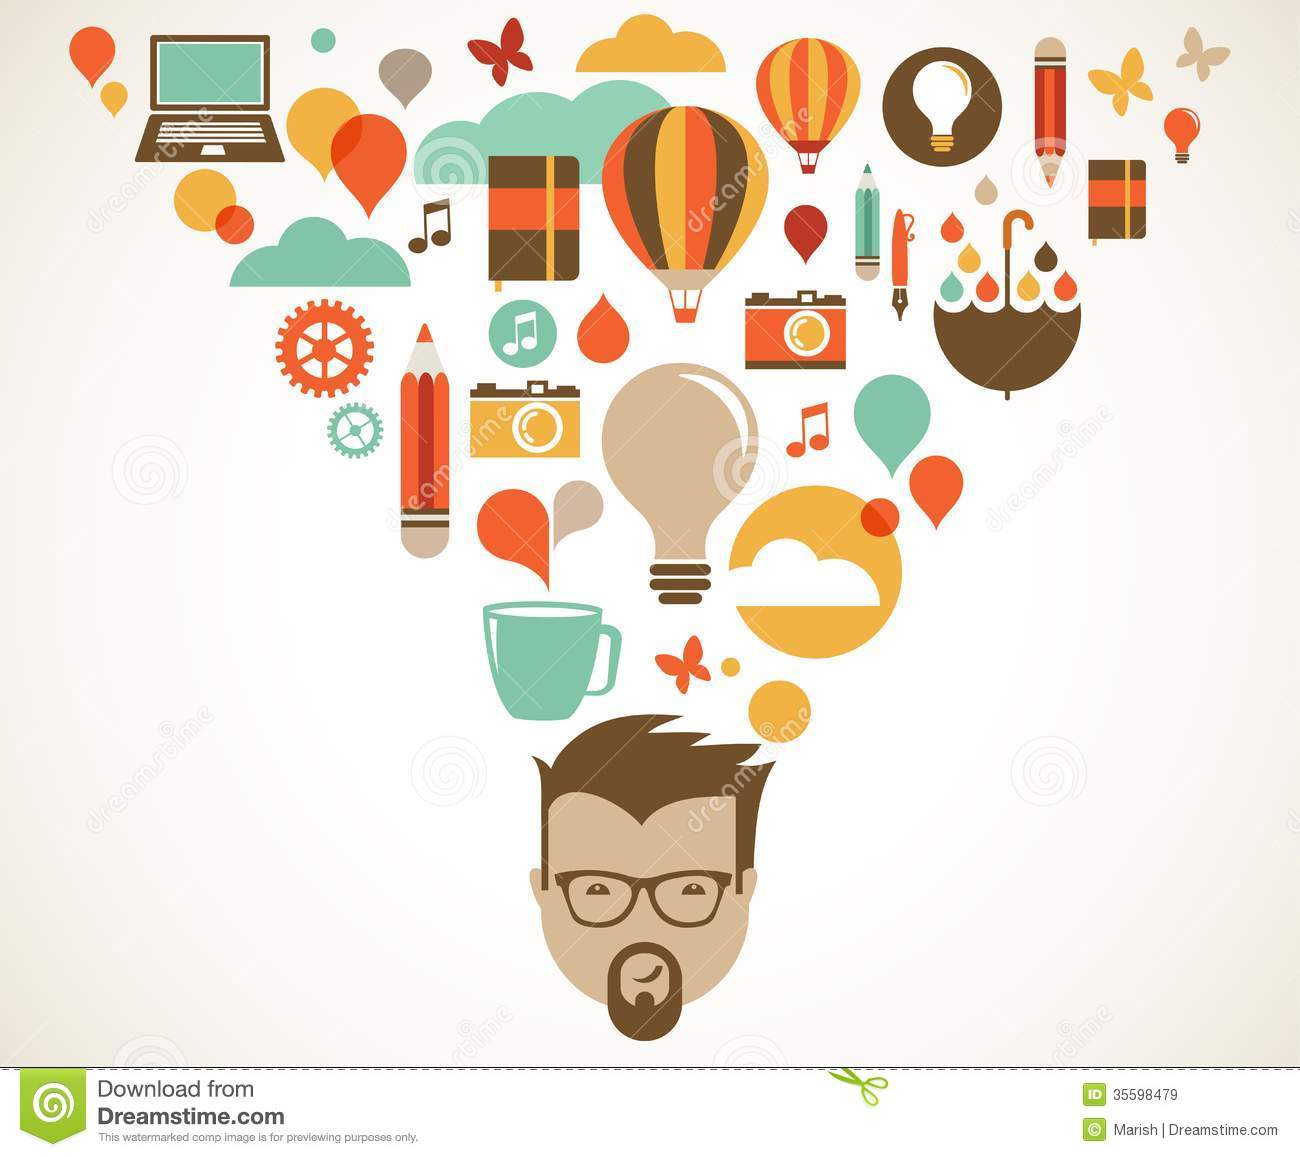 design creative idea and innovation concept royalty free